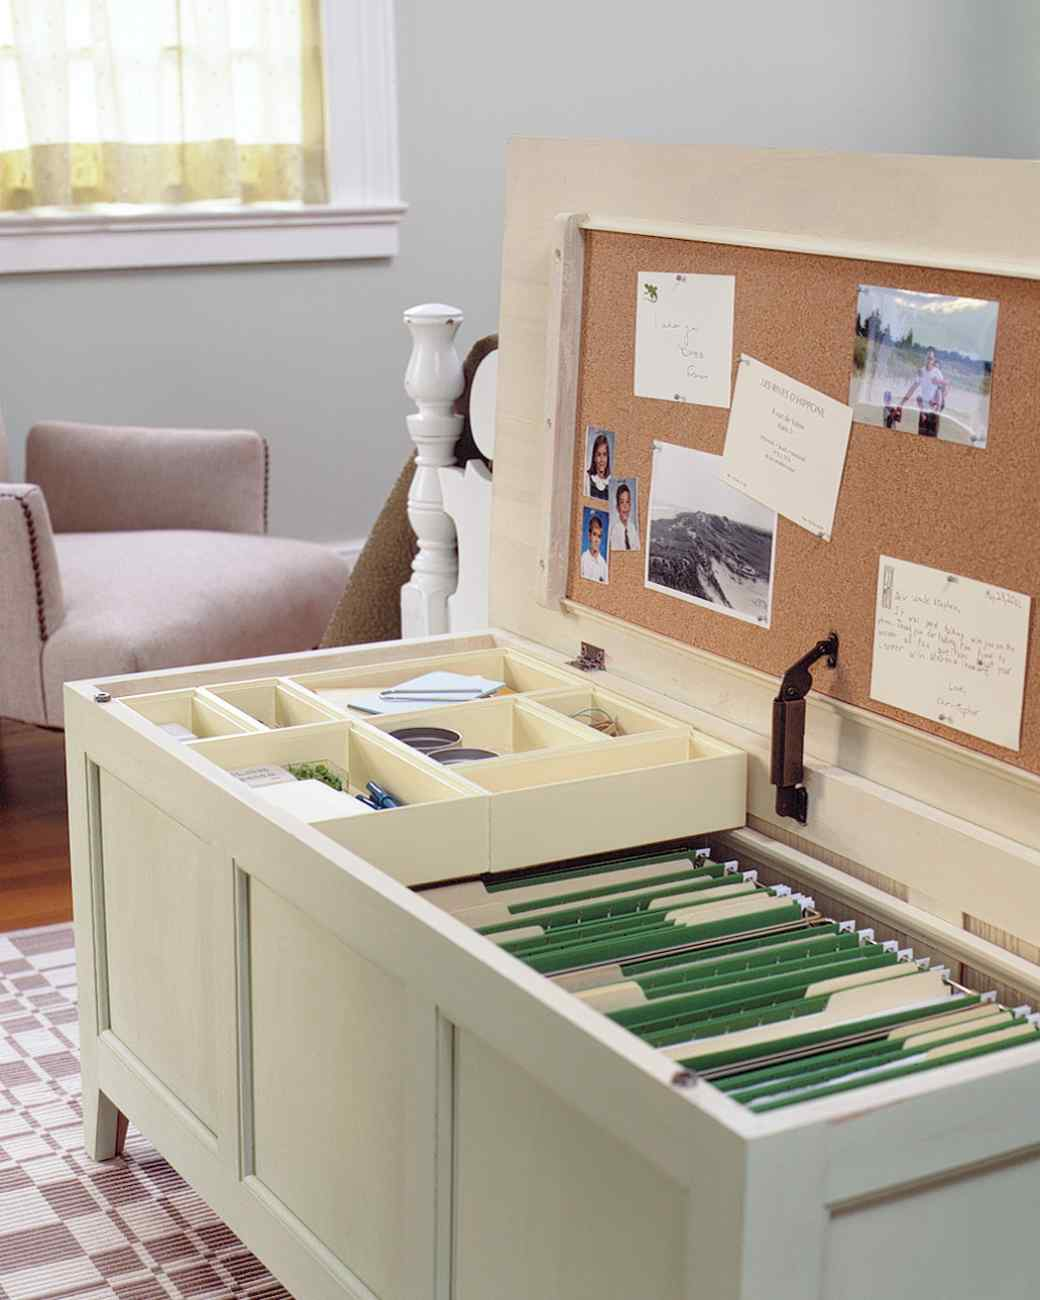 18 insanely awesome home office organization ideas - Organize small space property ...